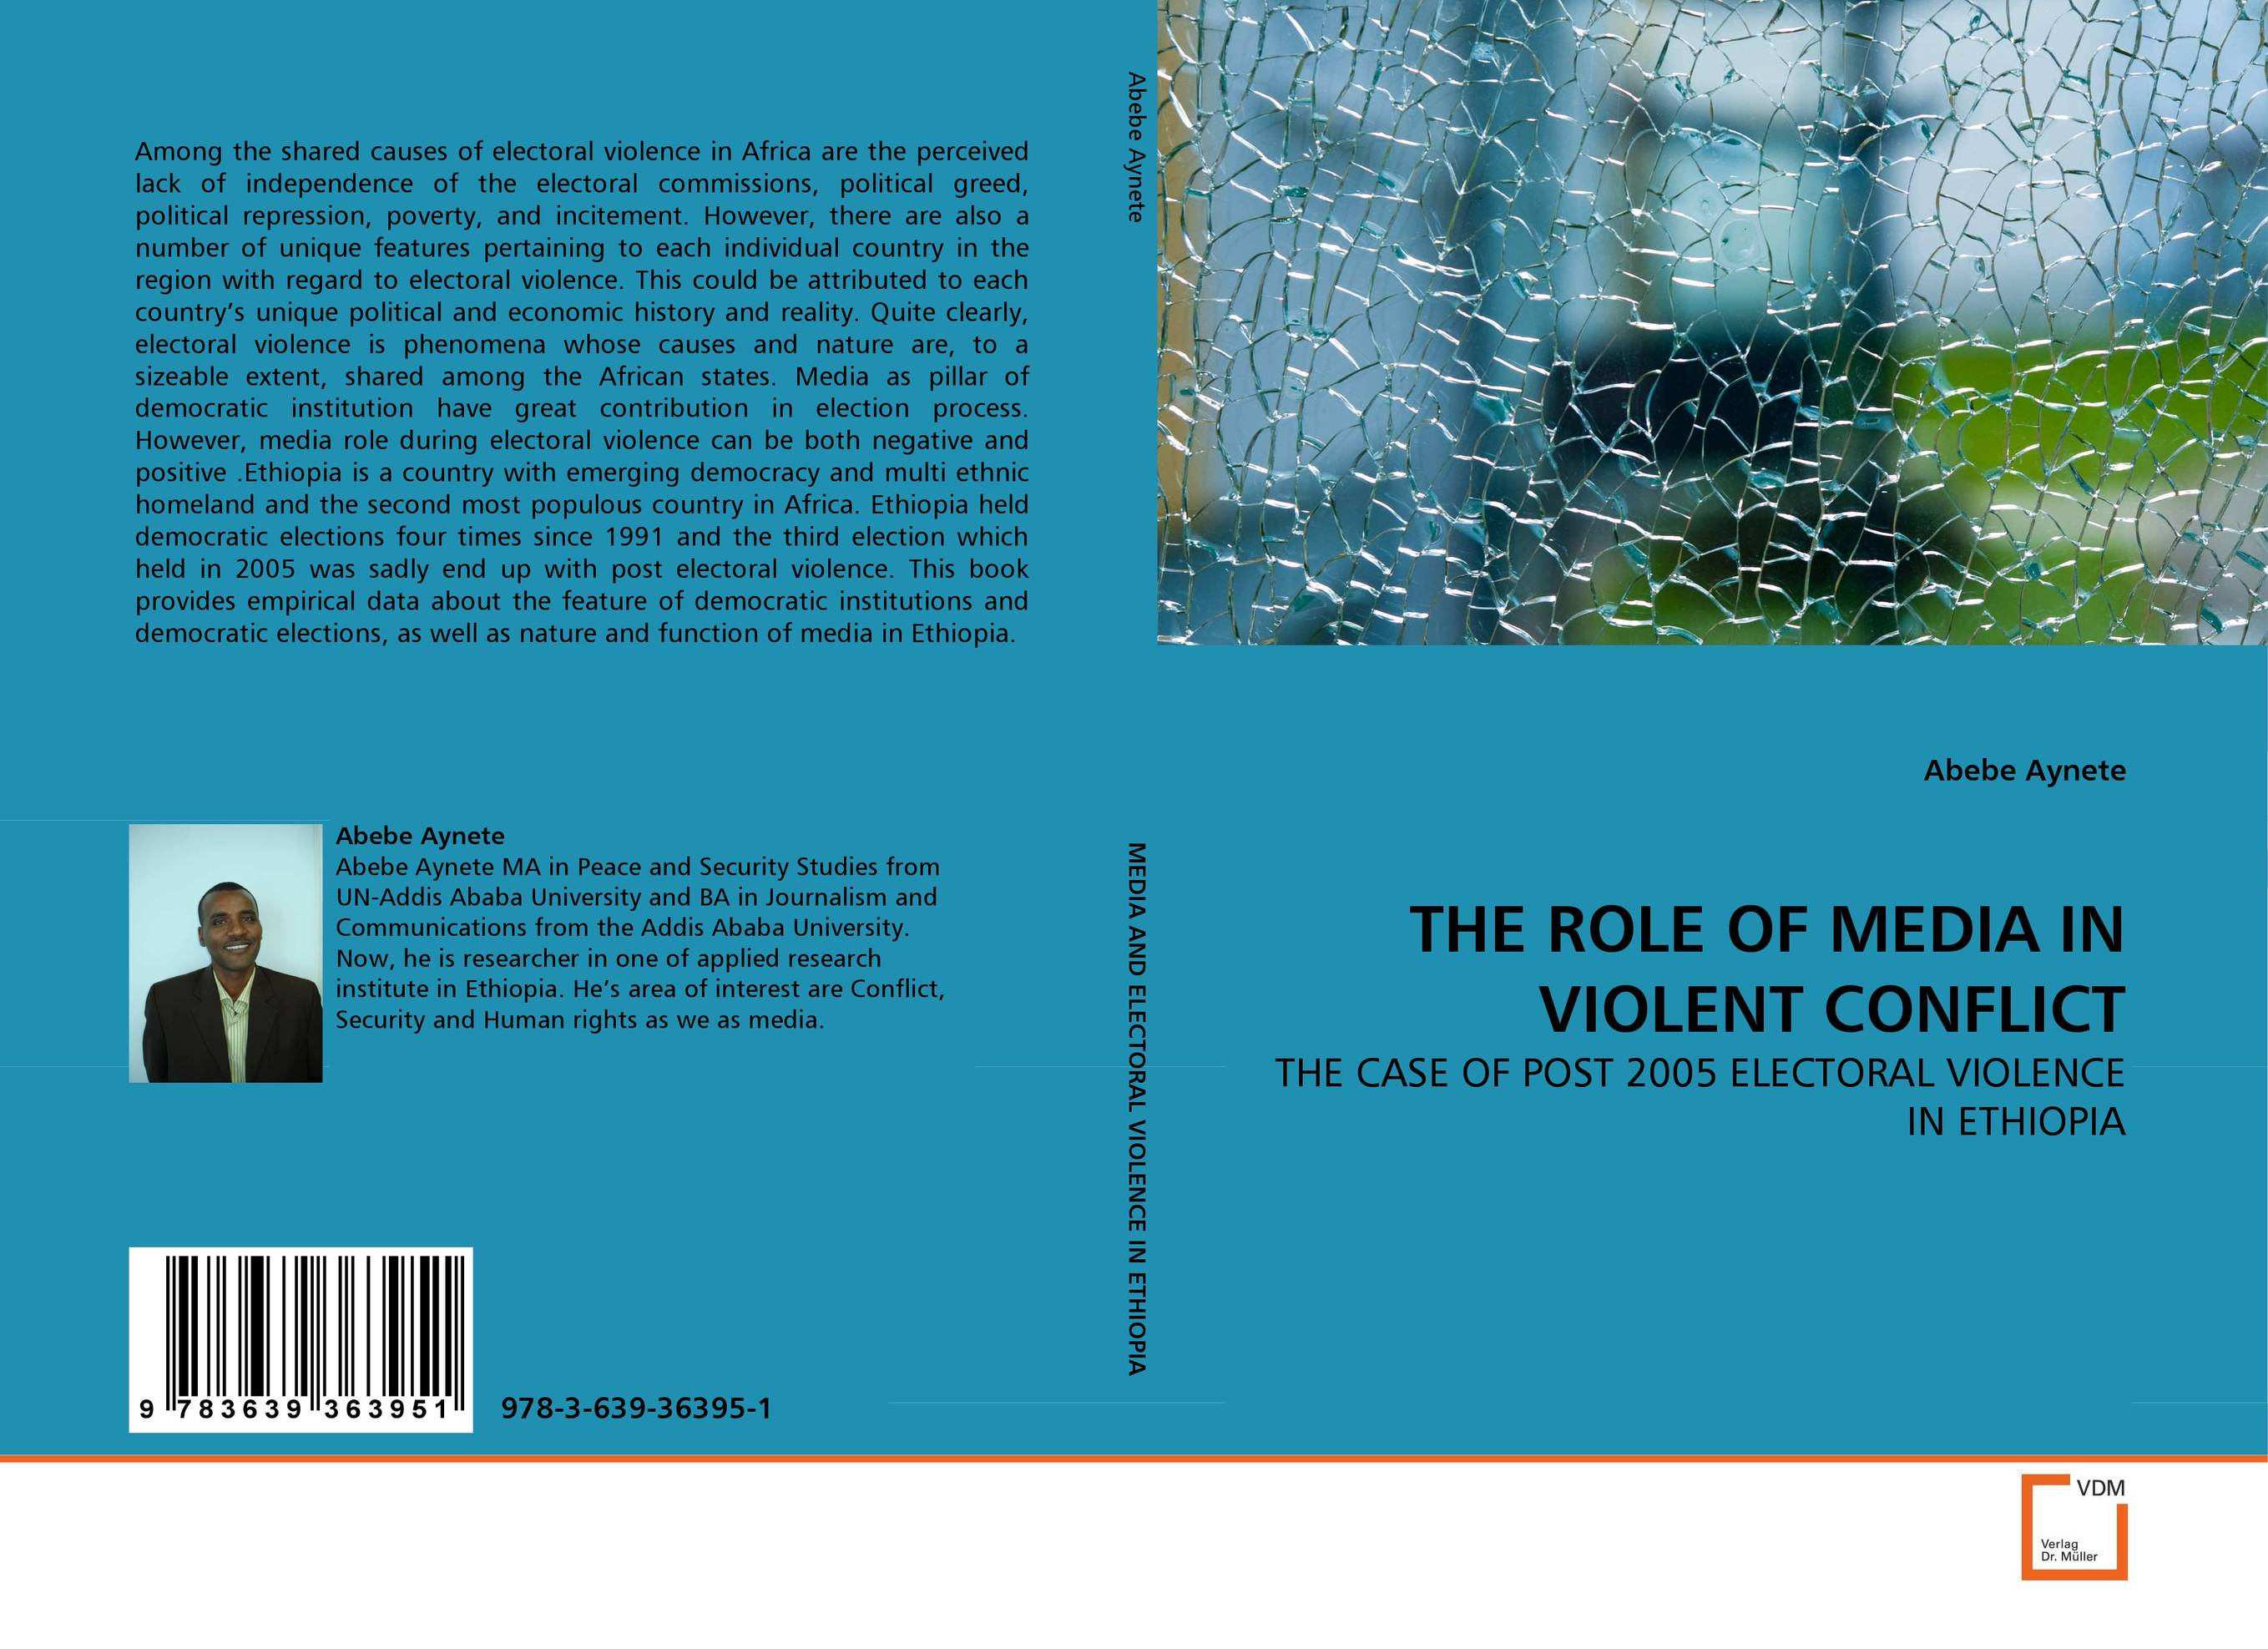 THE ROLE OF MEDIA IN VIOLENT CONFLICT trans border ethnic hegemony and political conflict in africa